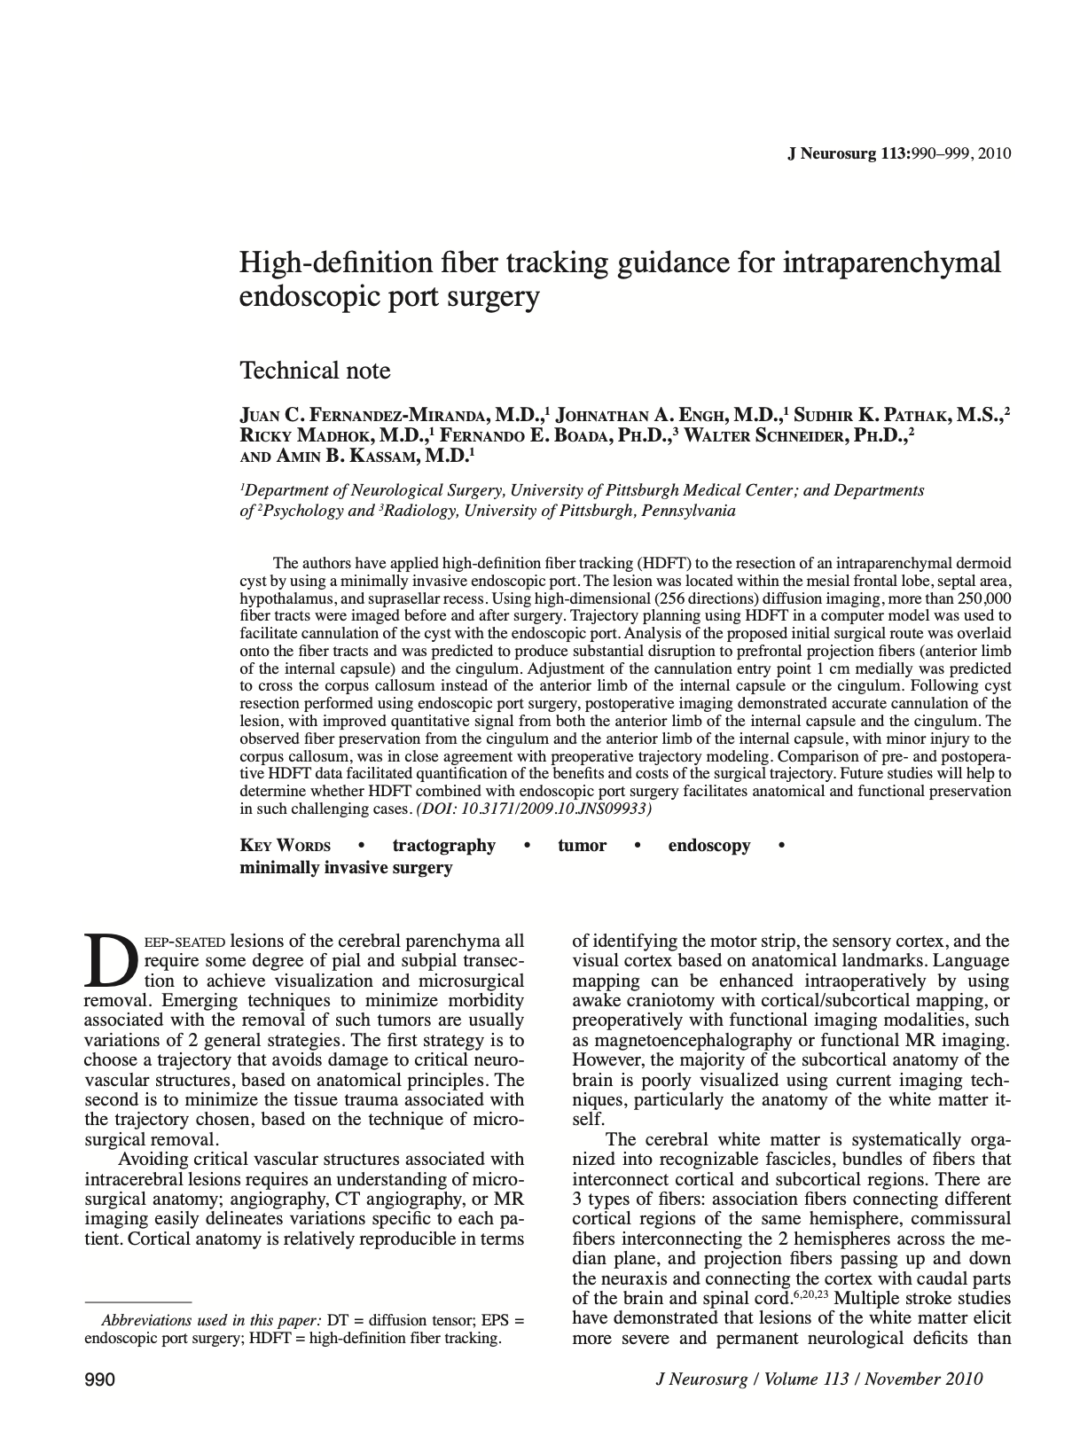 High-definition fiber tracking guidance for intraparenchymal endoscopic port surgery